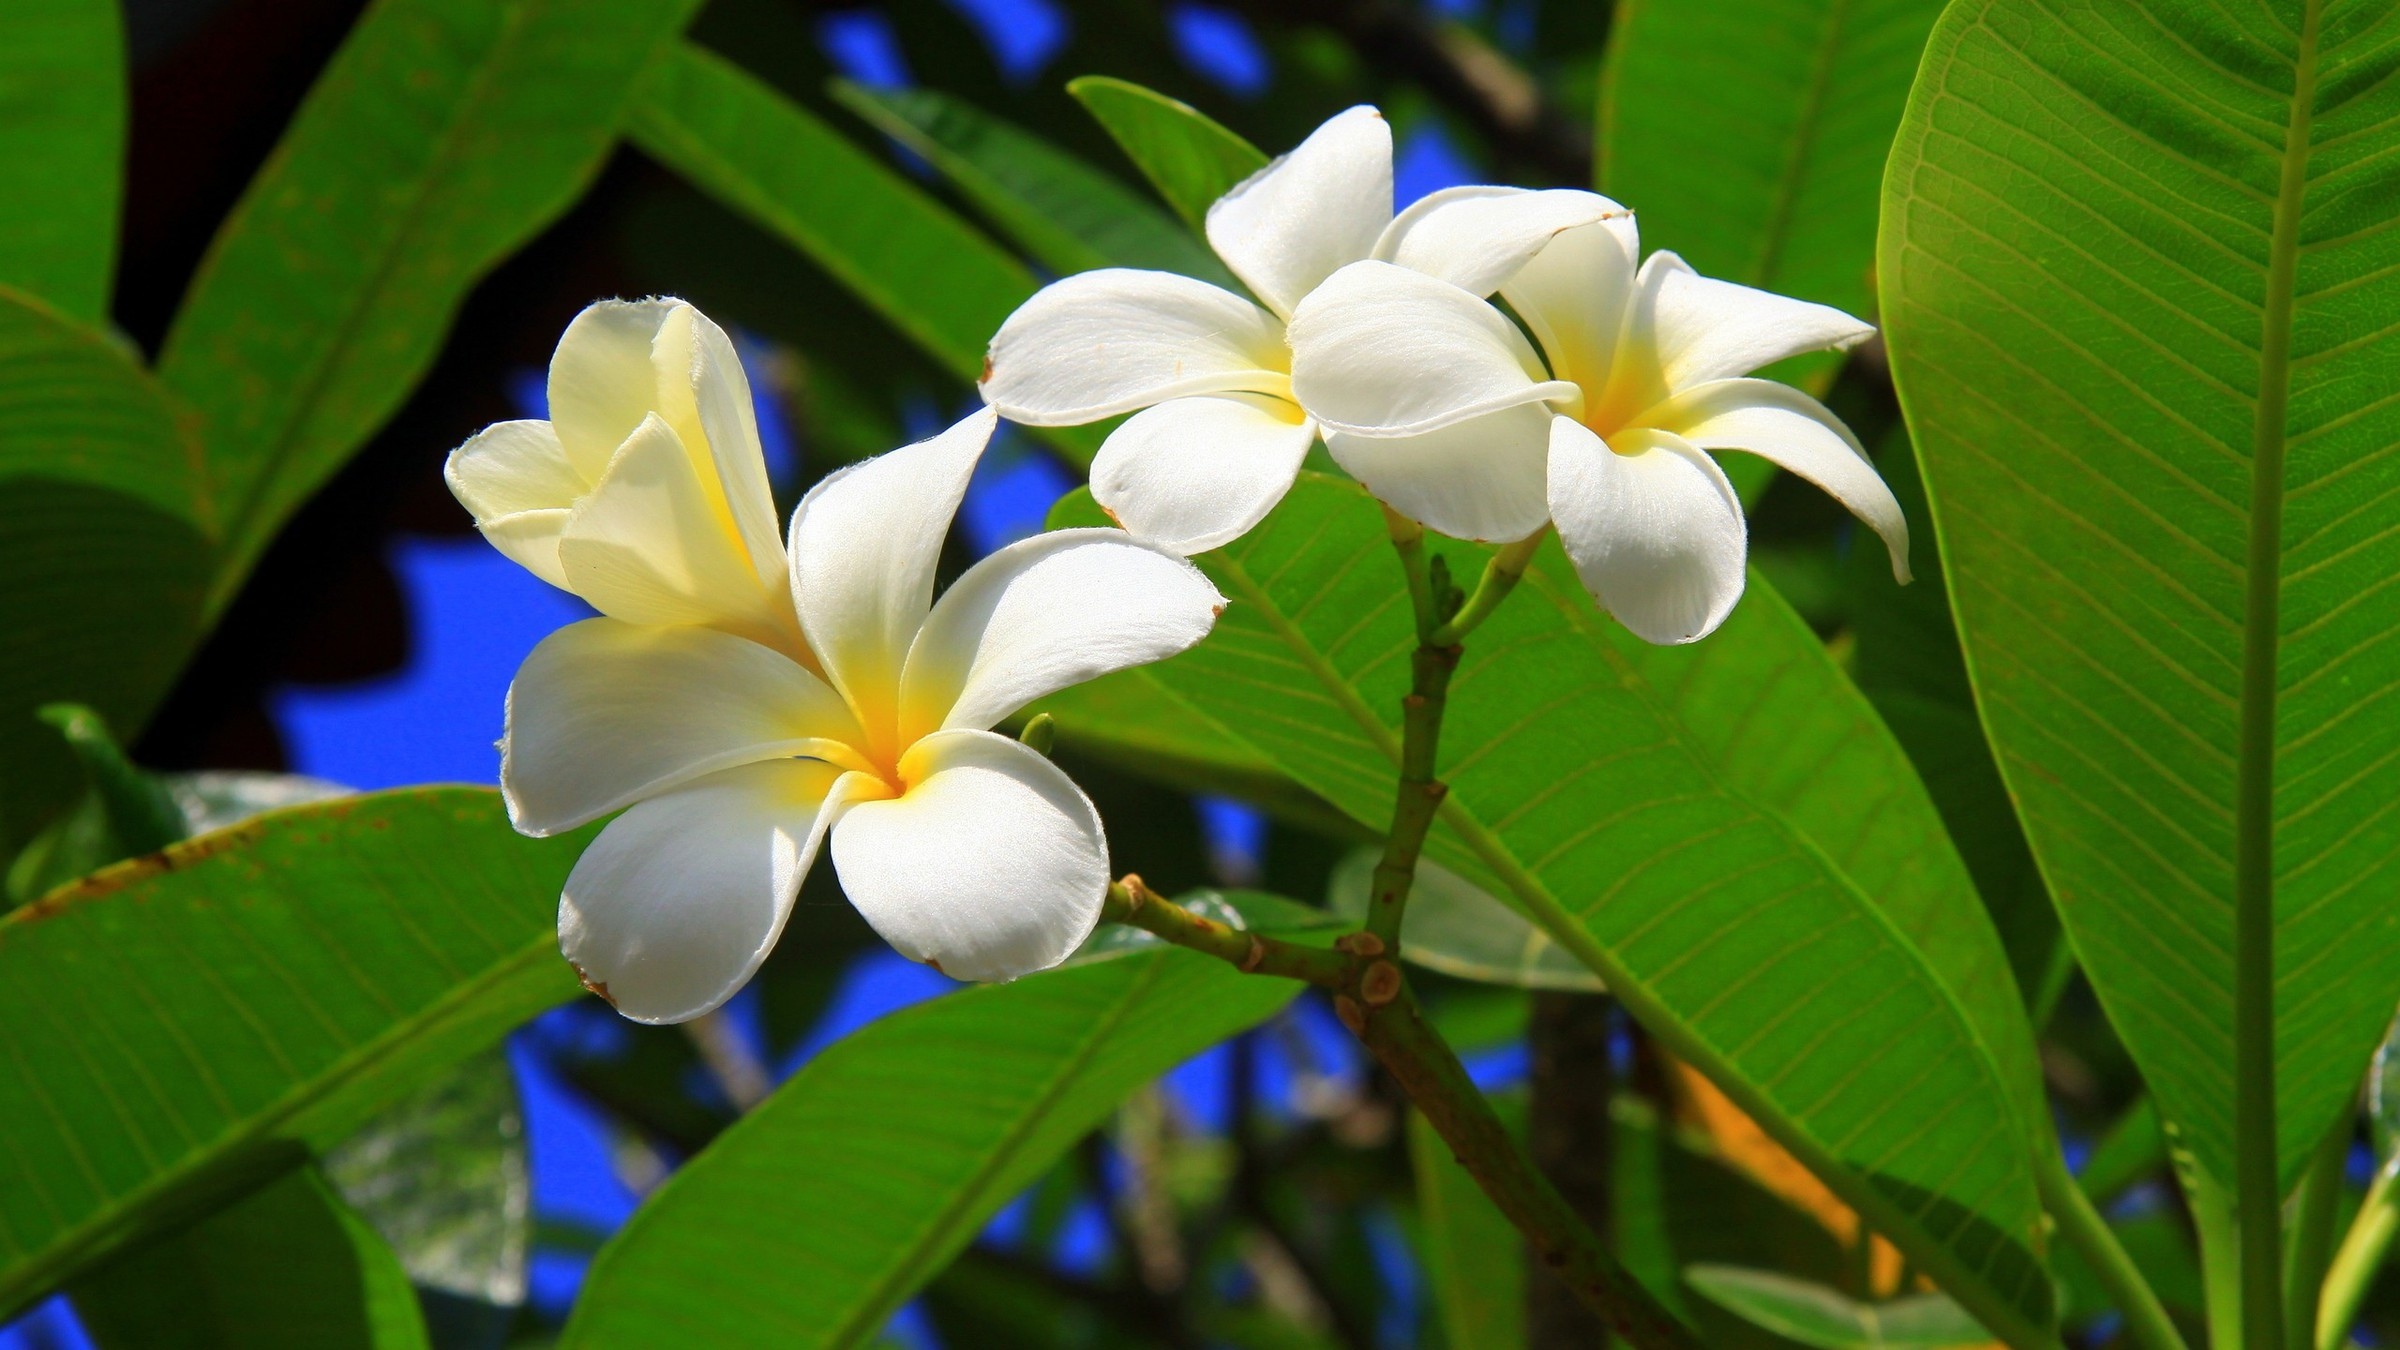 White flowers names list with pictures gallery fresh lotus flowers flowers plants plumeria white wallpaper allwallpaper 3021 pc mightylinksfo